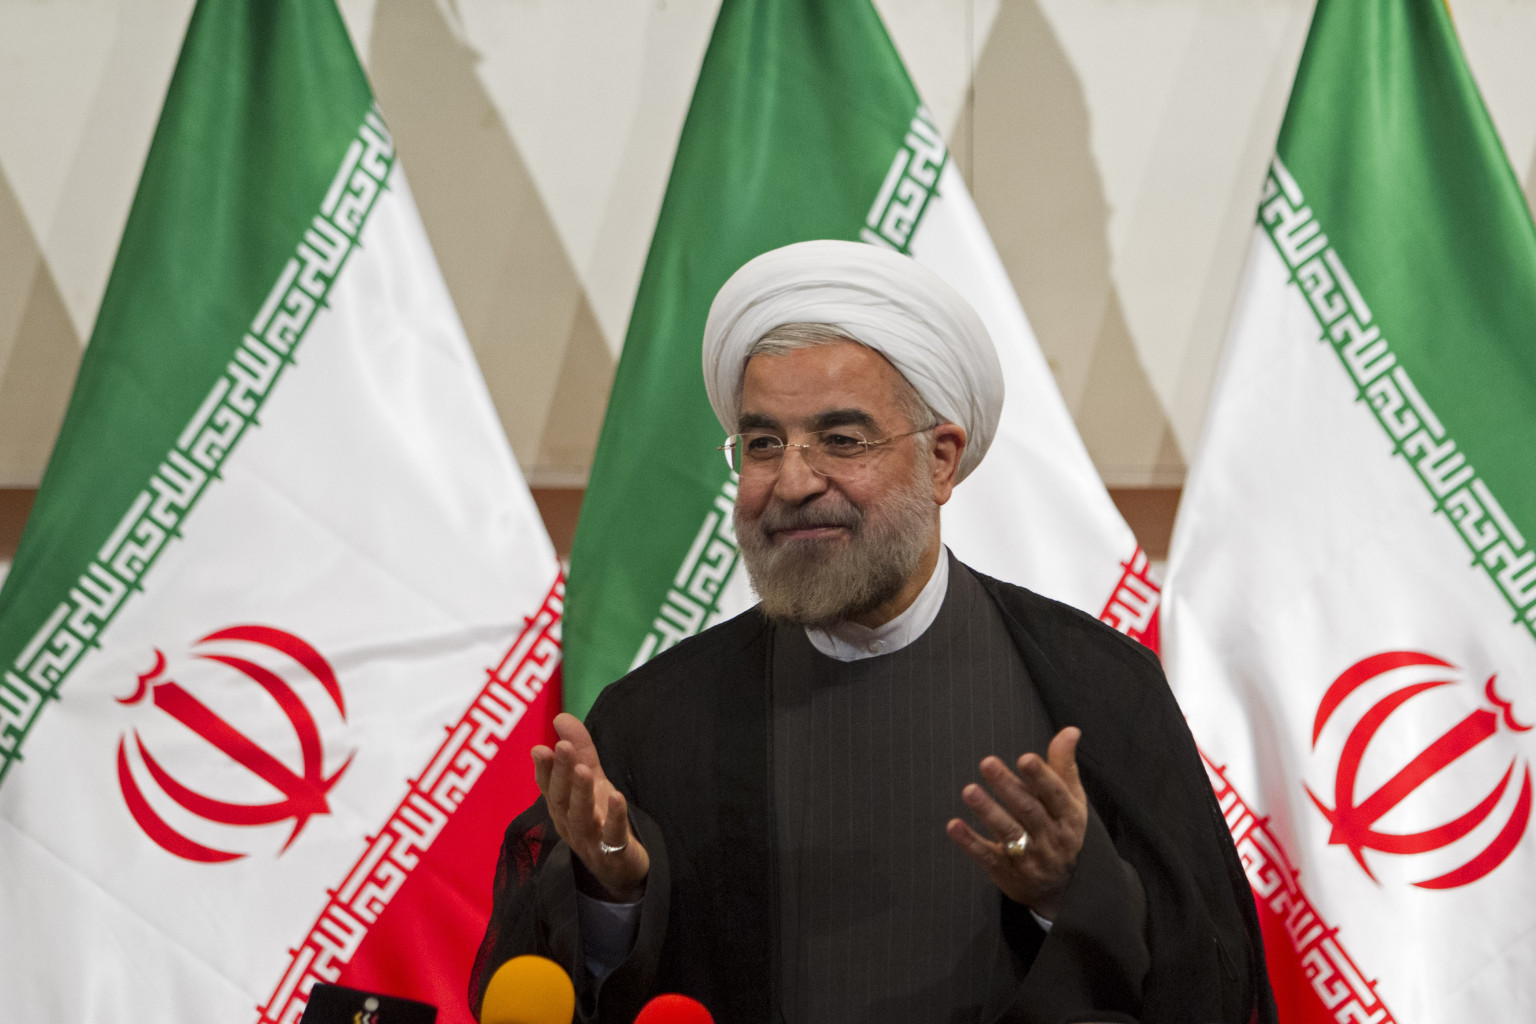 Iran: Election or Selection? – Op-Ed